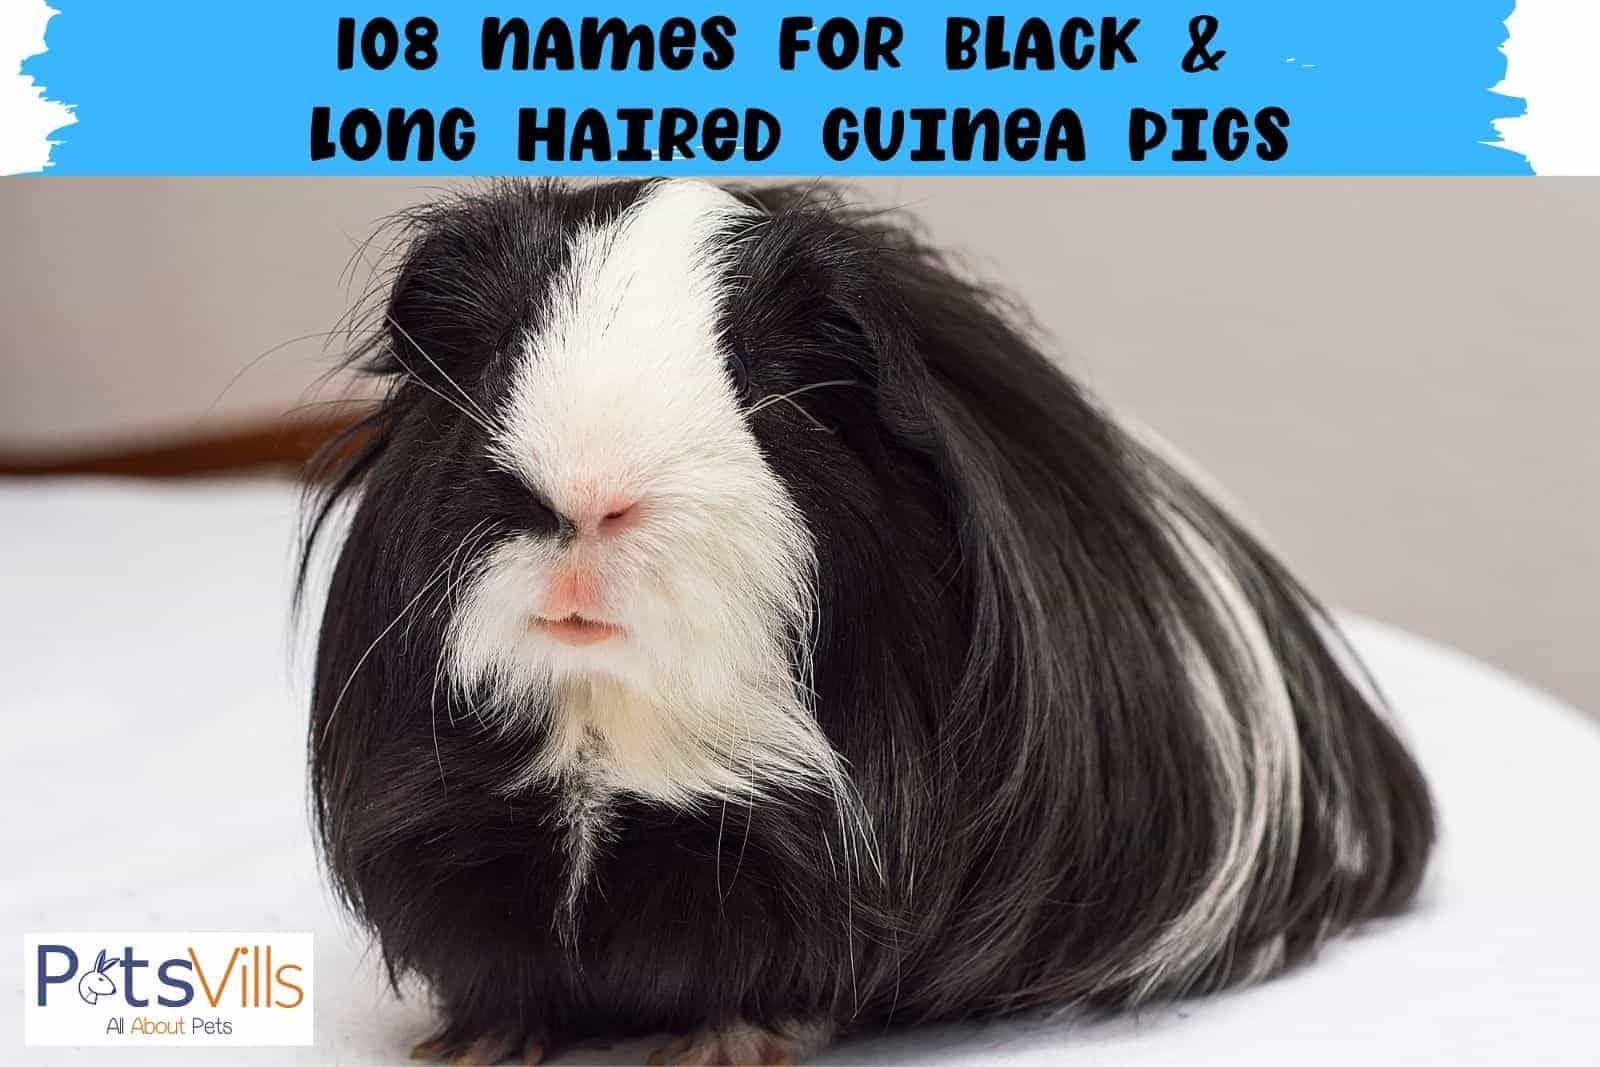 108 names for black and long haired guinea pigs